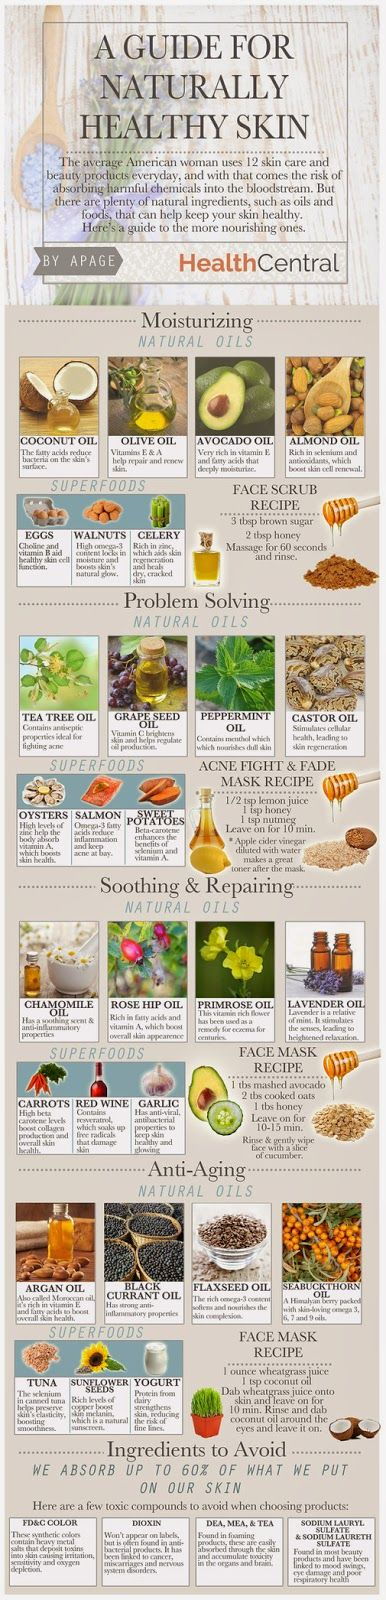 A Guide for Naturally Healthy Skin [Infographic] lists many of the natural oils that can be used topically and superfoods that can be eaten to moisturize, soothe and repair skin as well as preventing aging or solve problems like acne.